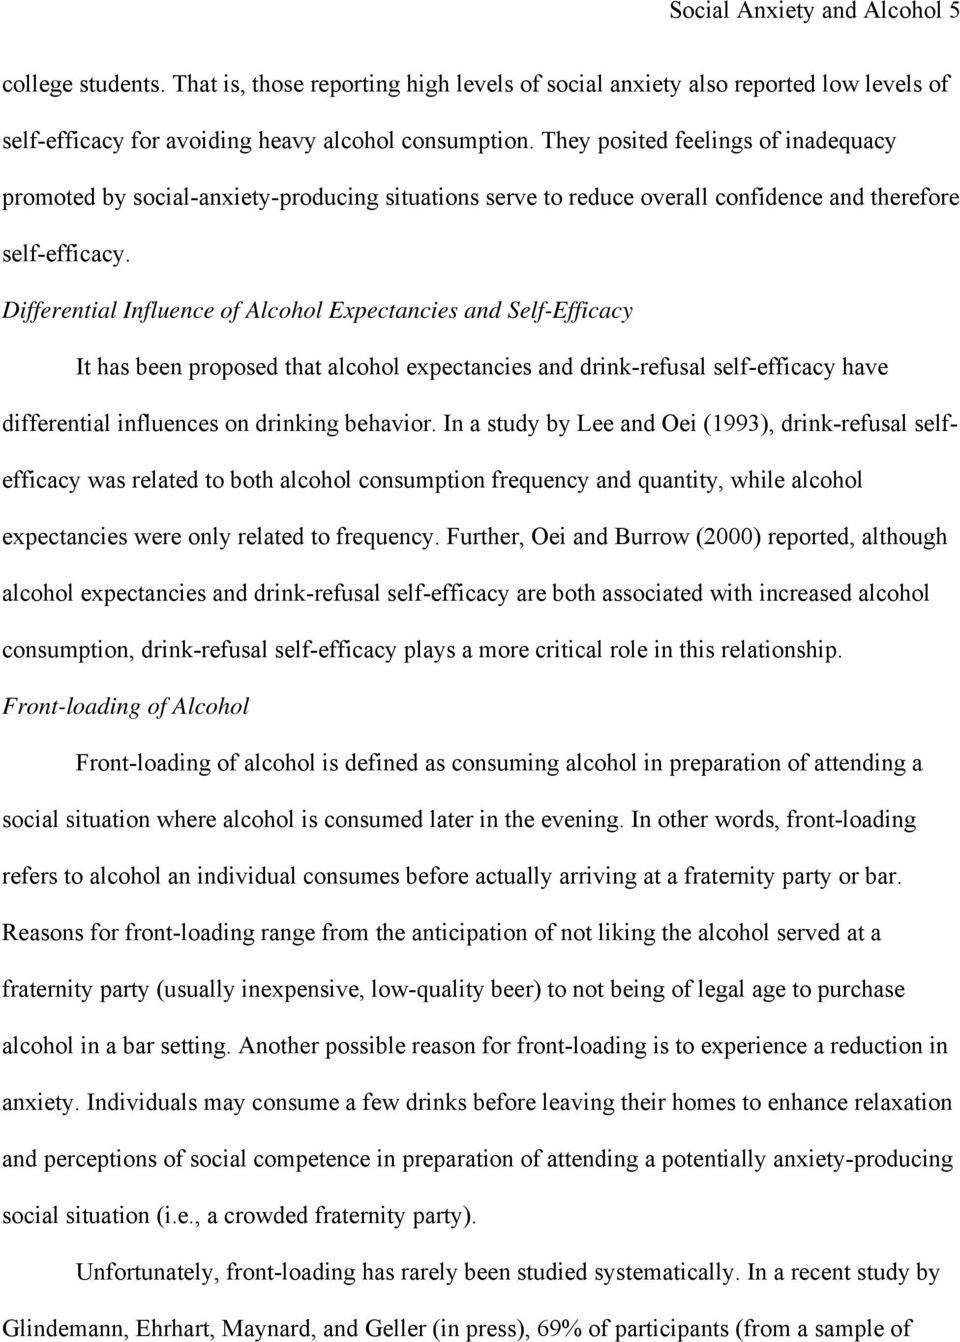 Differential Influence of Alcohol Expectancies and Self-Efficacy It has been proposed that alcohol expectancies and drink-refusal self-efficacy have differential influences on drinking behavior.